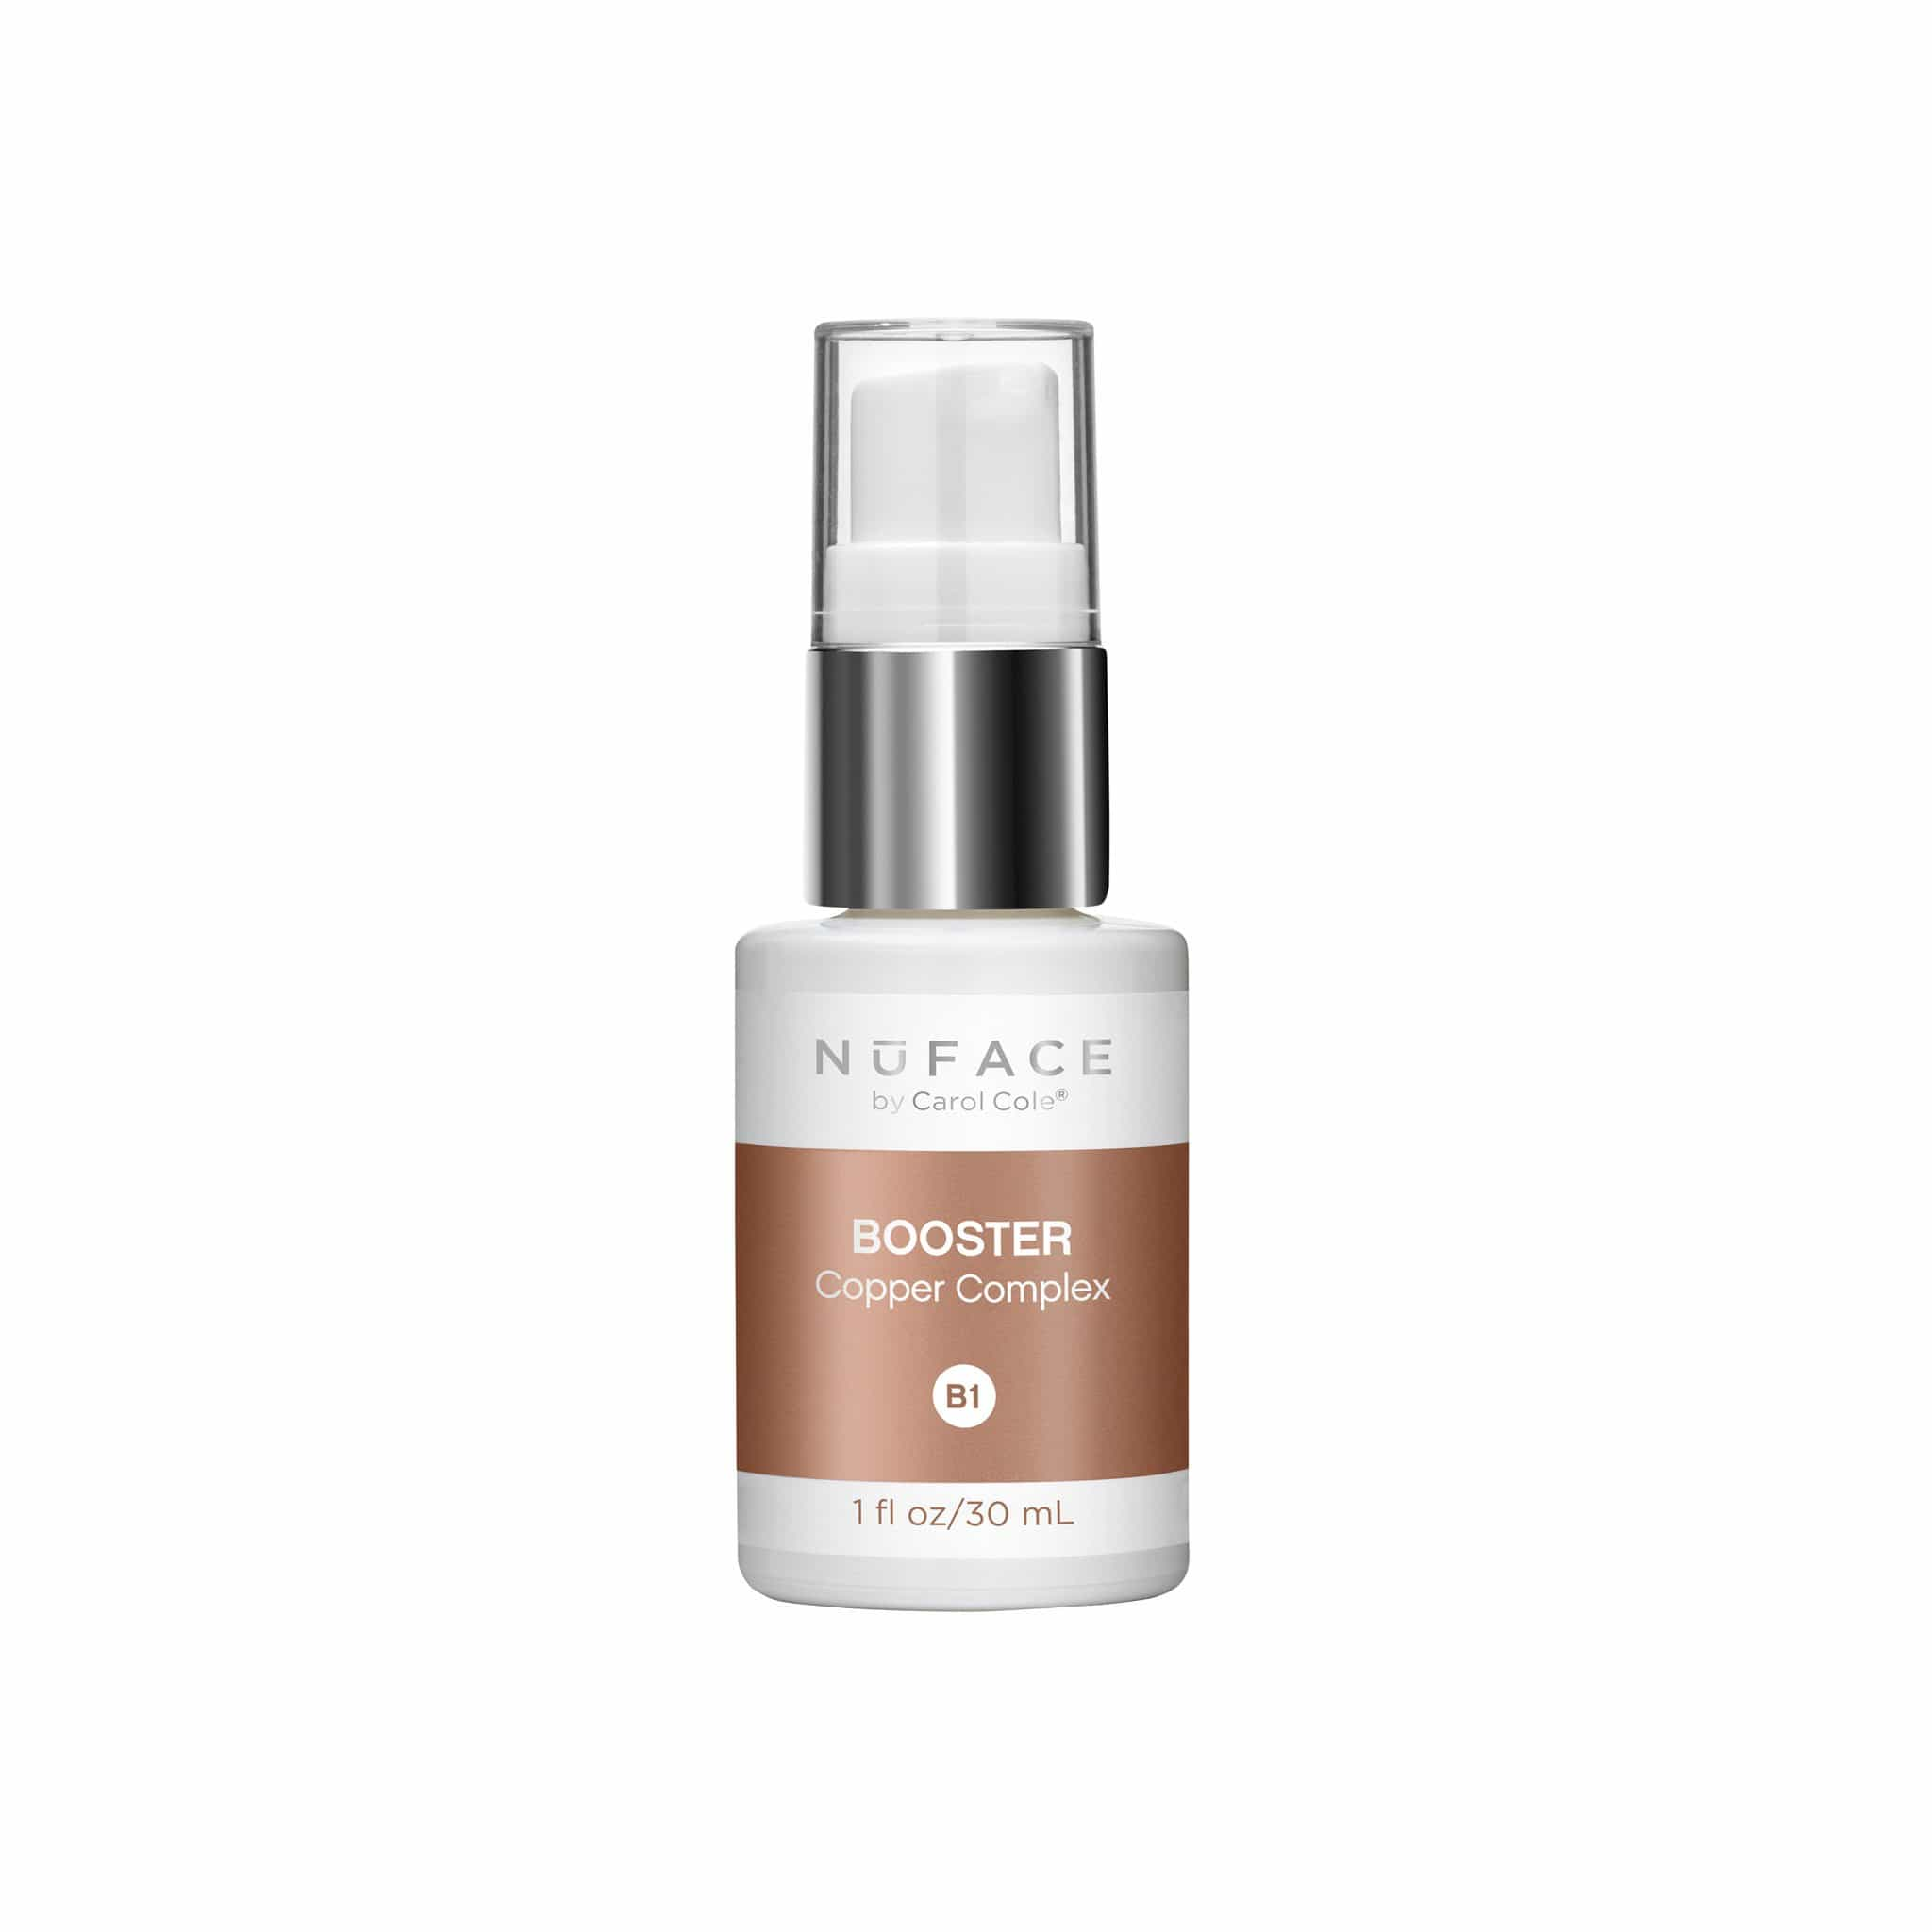 Booster Copper Complex - Skincare Serum